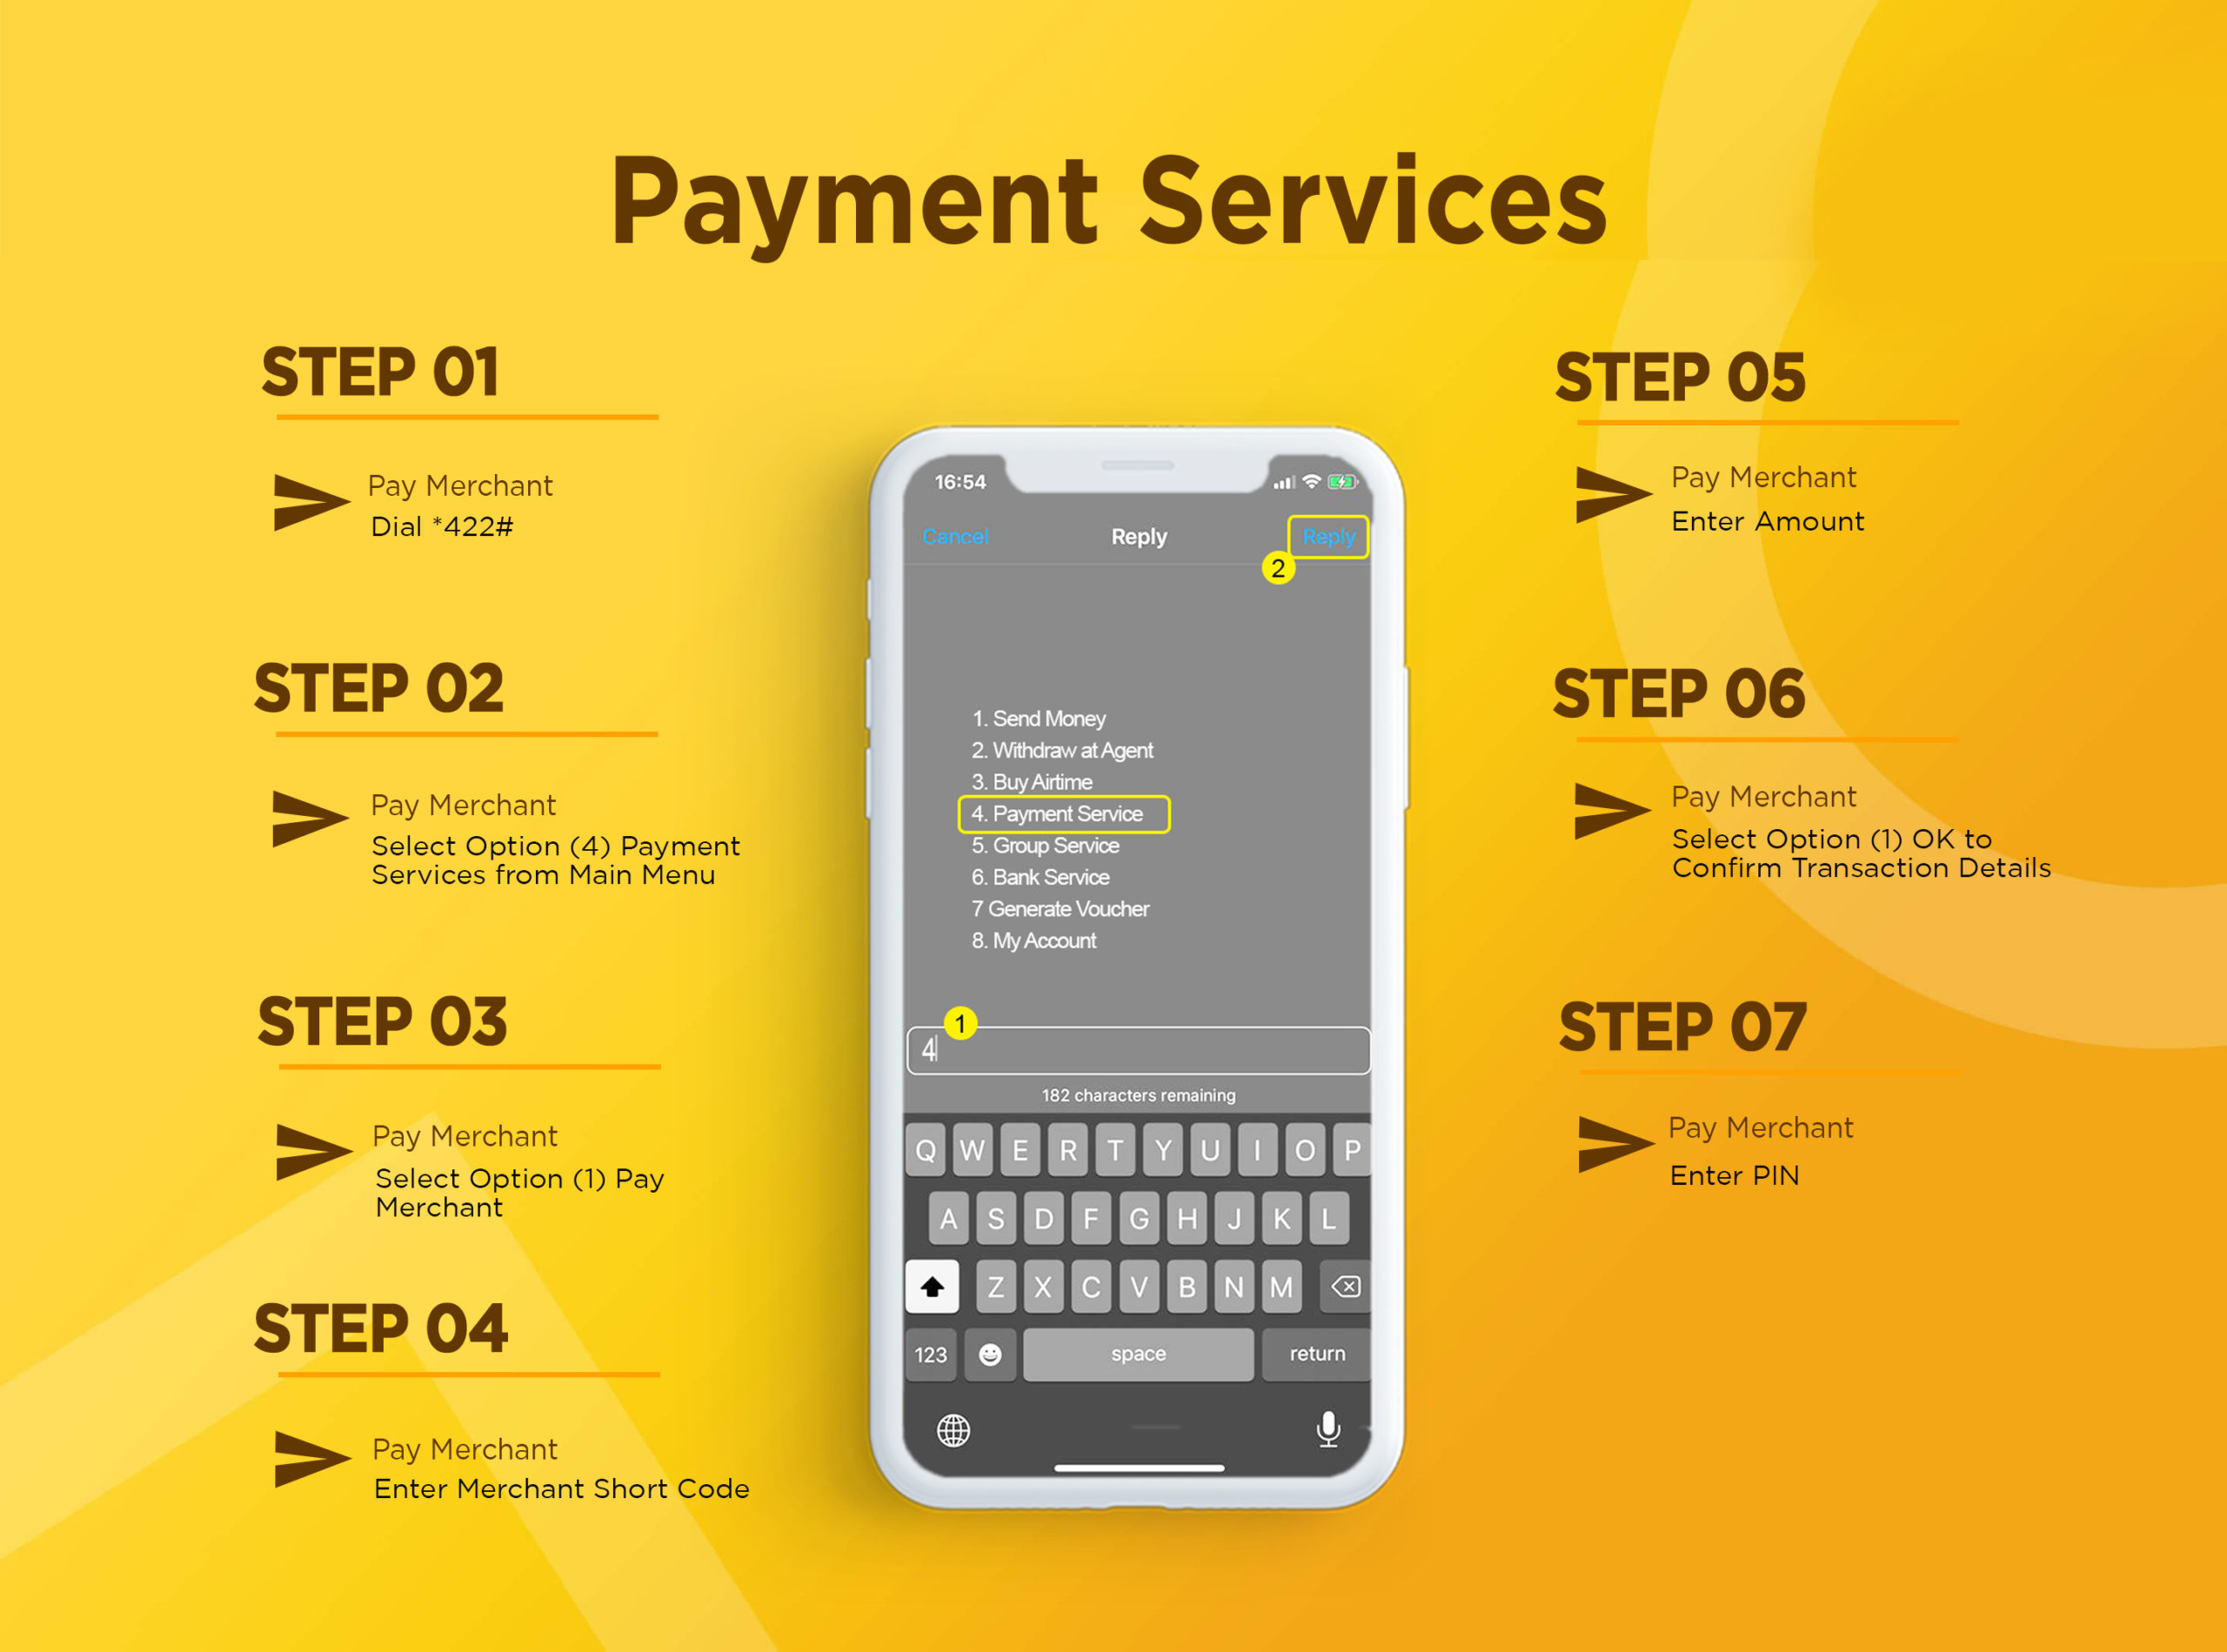 G-Money Payment Services